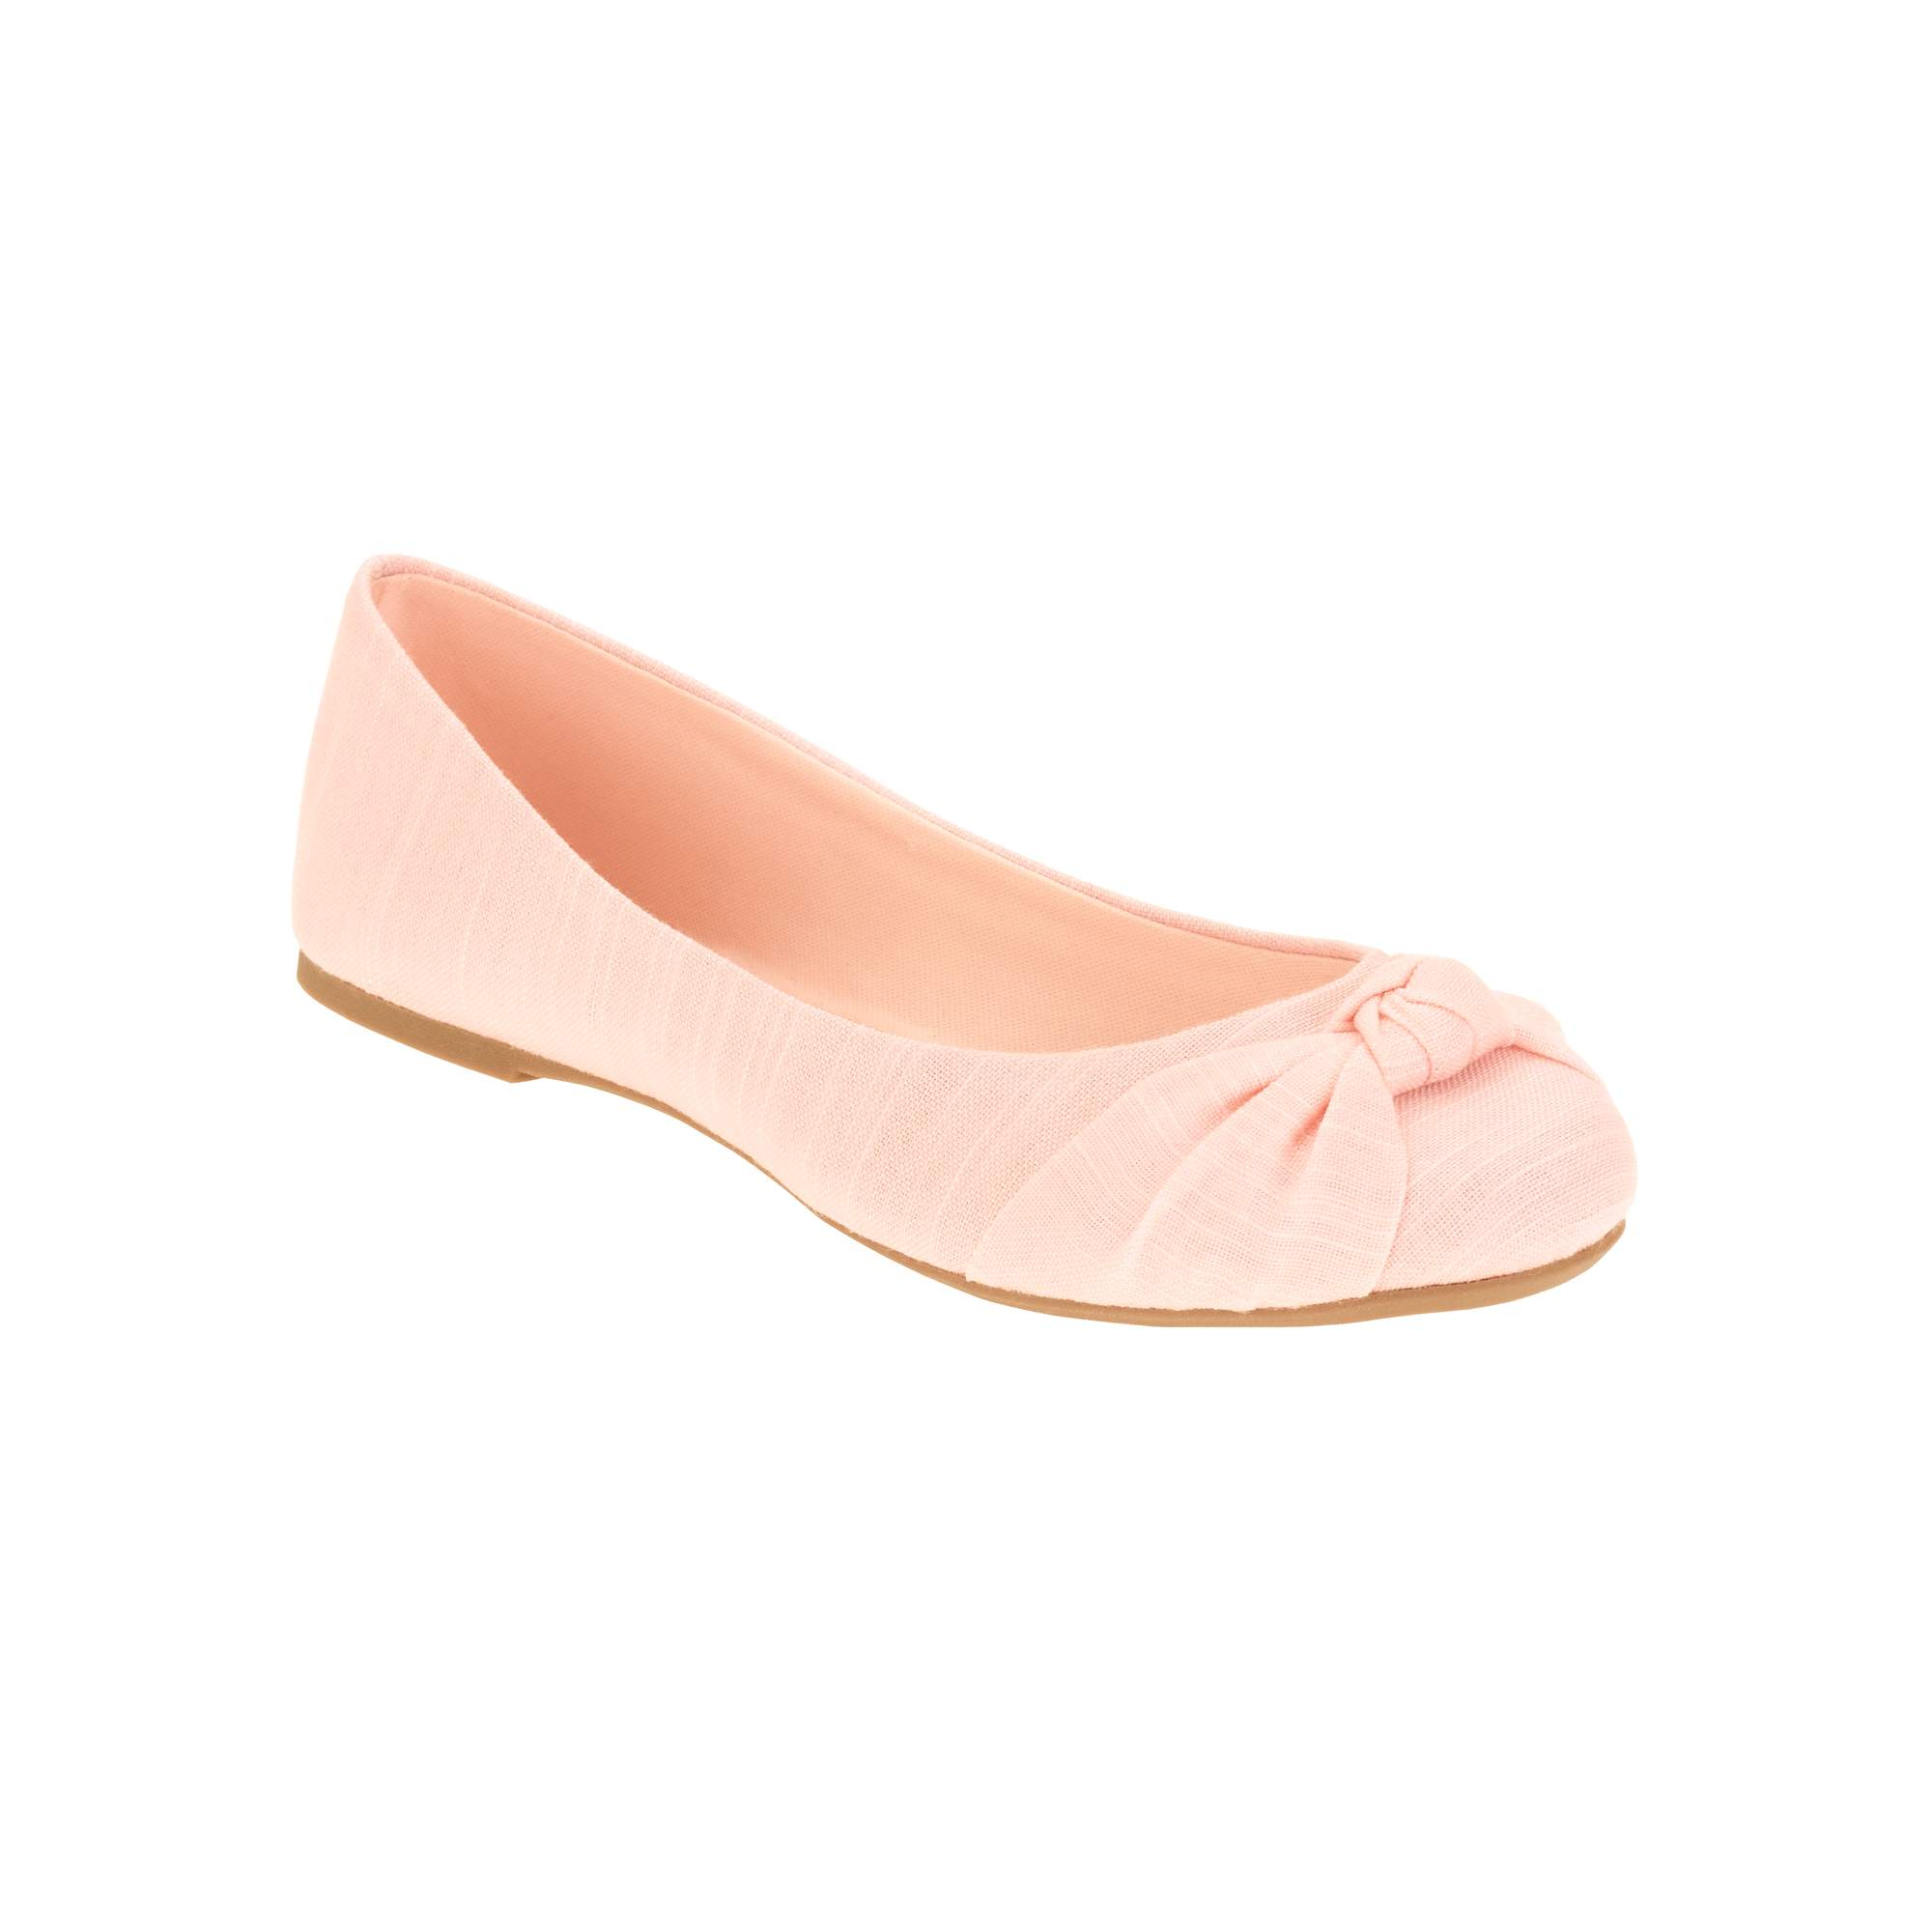 Time And Tru Brand Ballet Flats Metallic Gold Size 7.5  NEW Casual Shoes